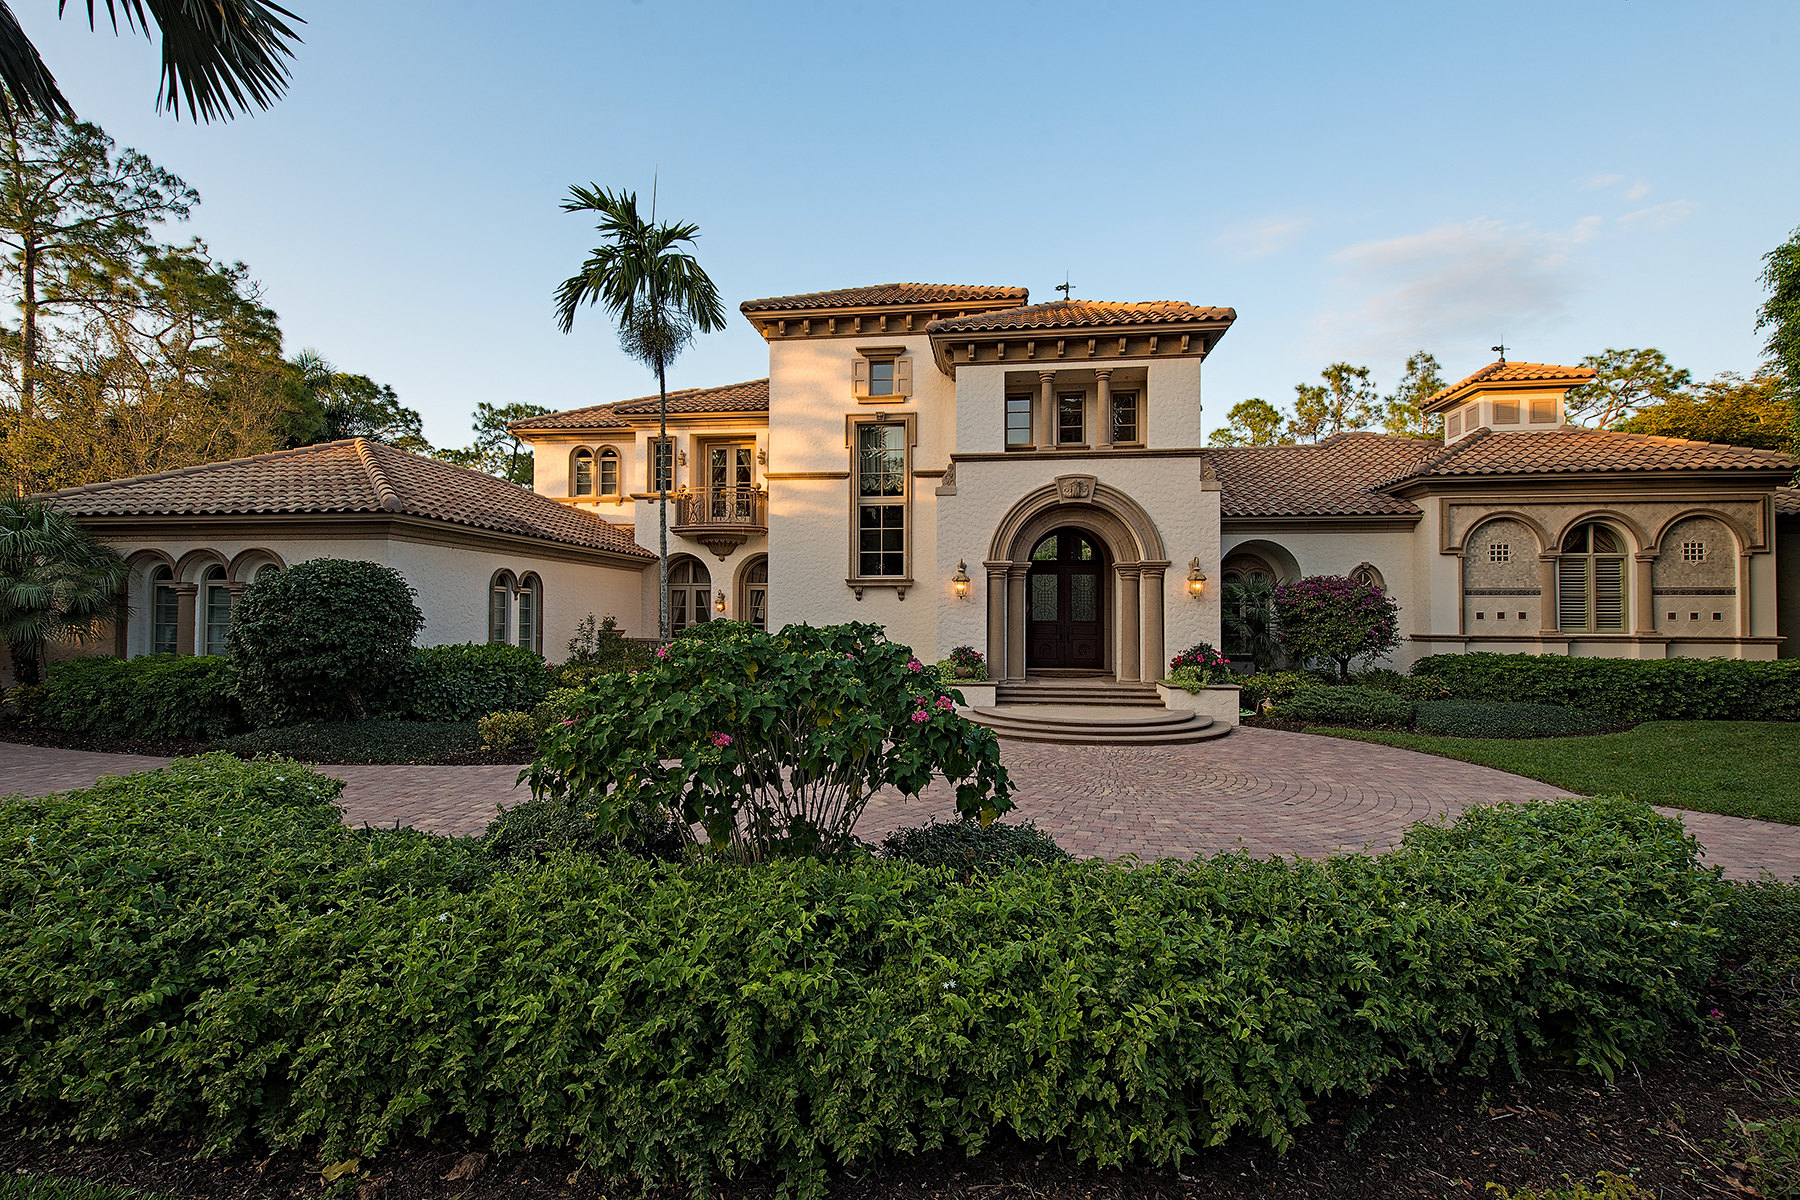 Casa Unifamiliar por un Alquiler en QUAIL WEST - QUAIL WEST 6529 Highcroft Dr, Naples, Florida 34119 Estados Unidos